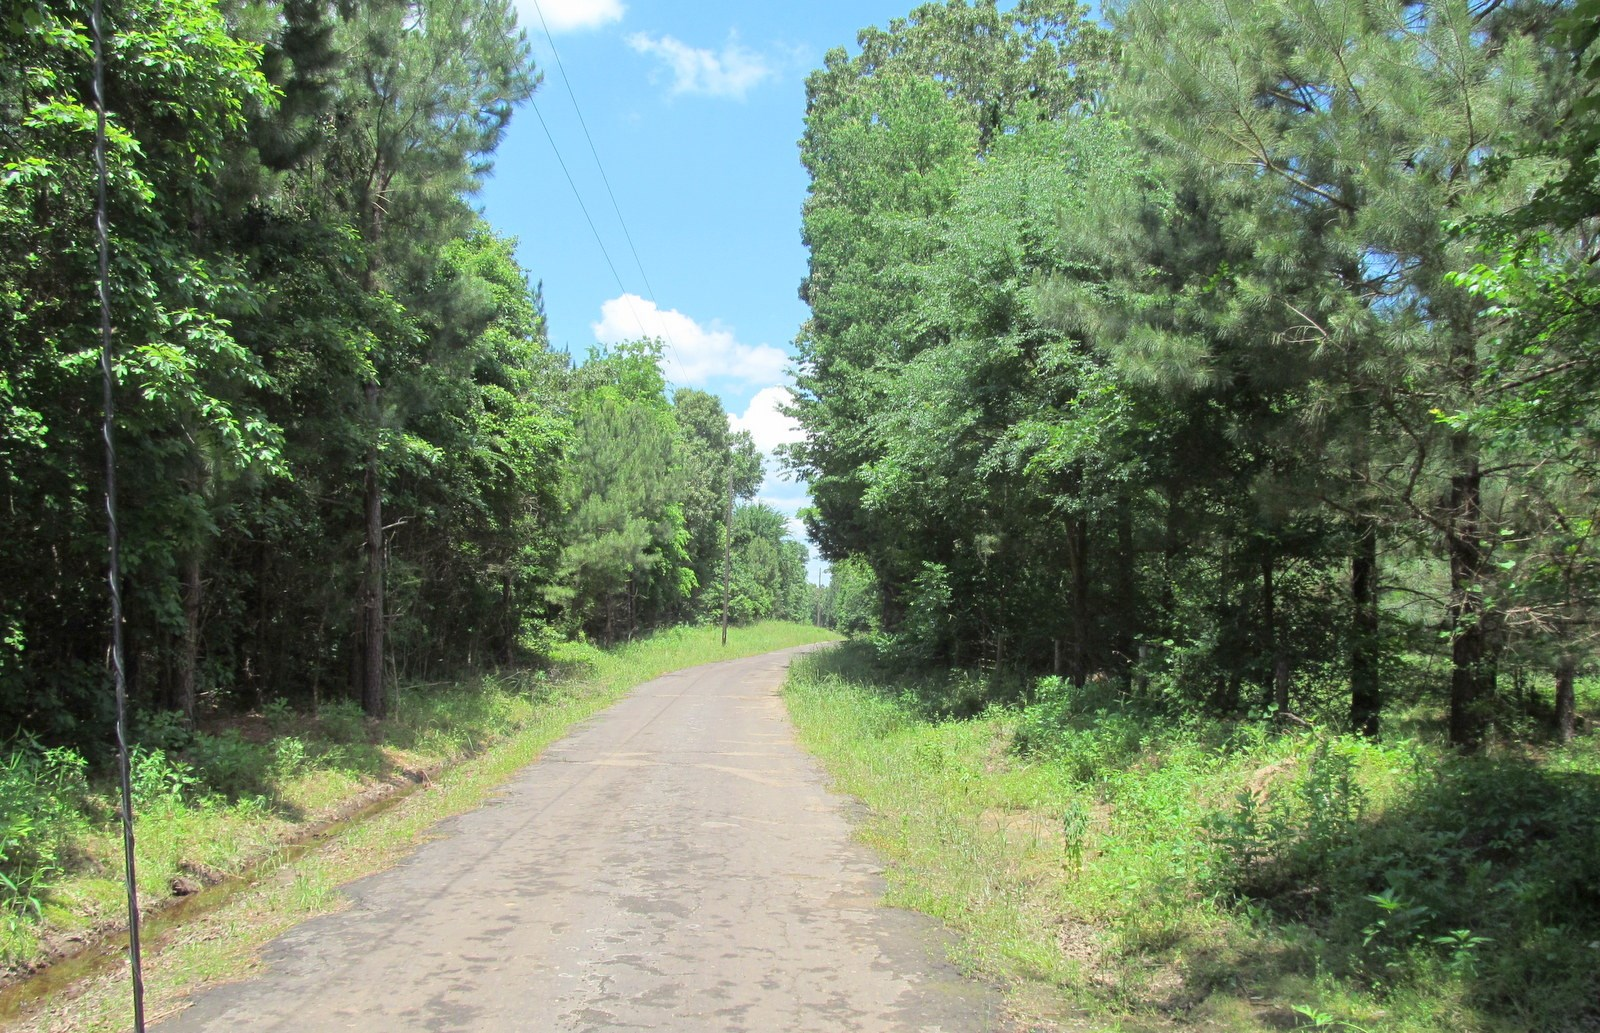 EAST TEXAS 218 ACRES - CAMP COUNTY - PITTSBURG - HUNT/BUILD